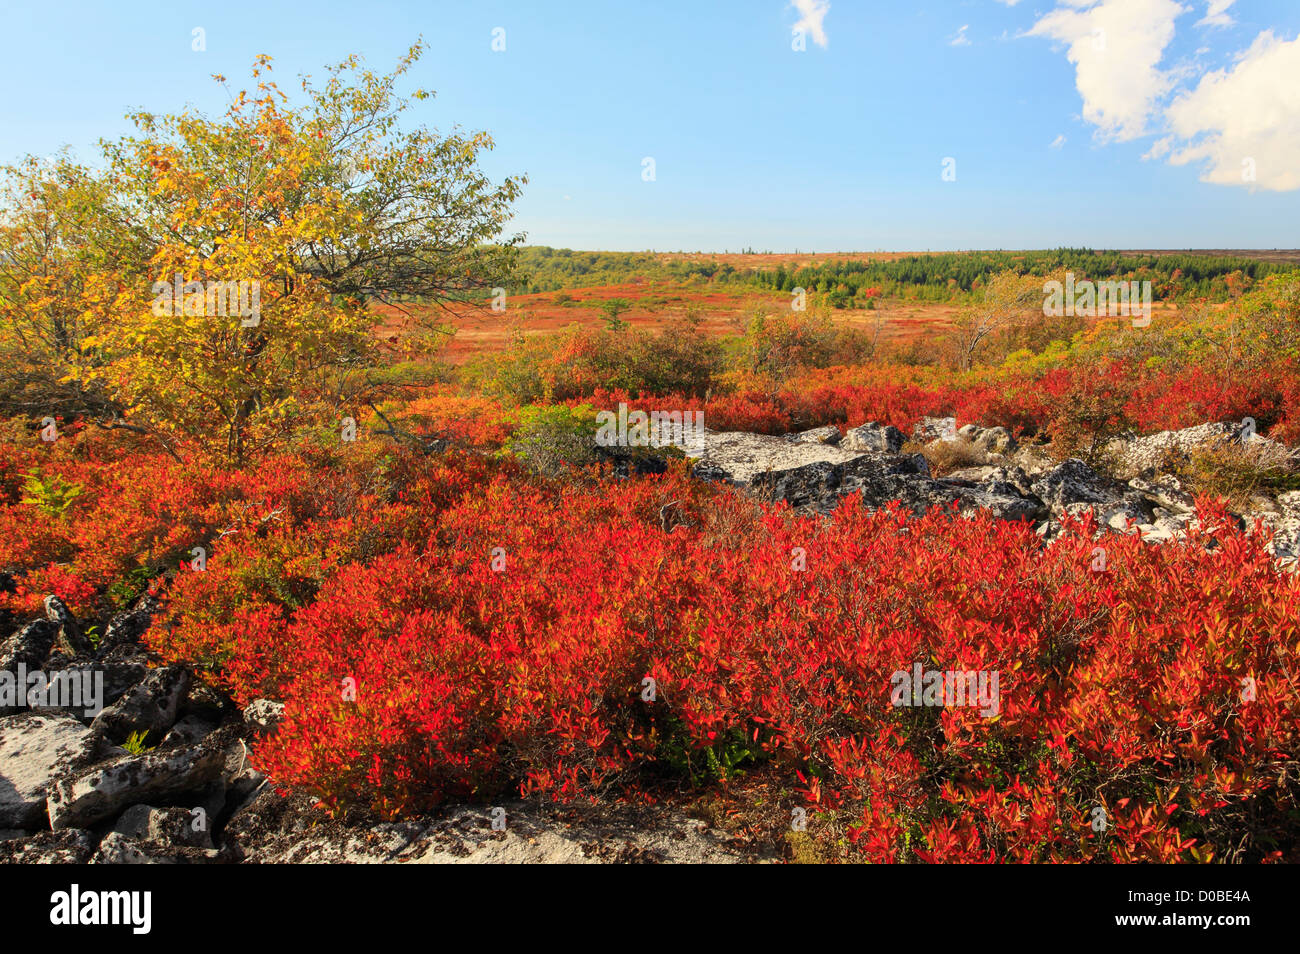 Dolly Sods Wilderness, Hopeville, West Virginia, USA - Stock Image